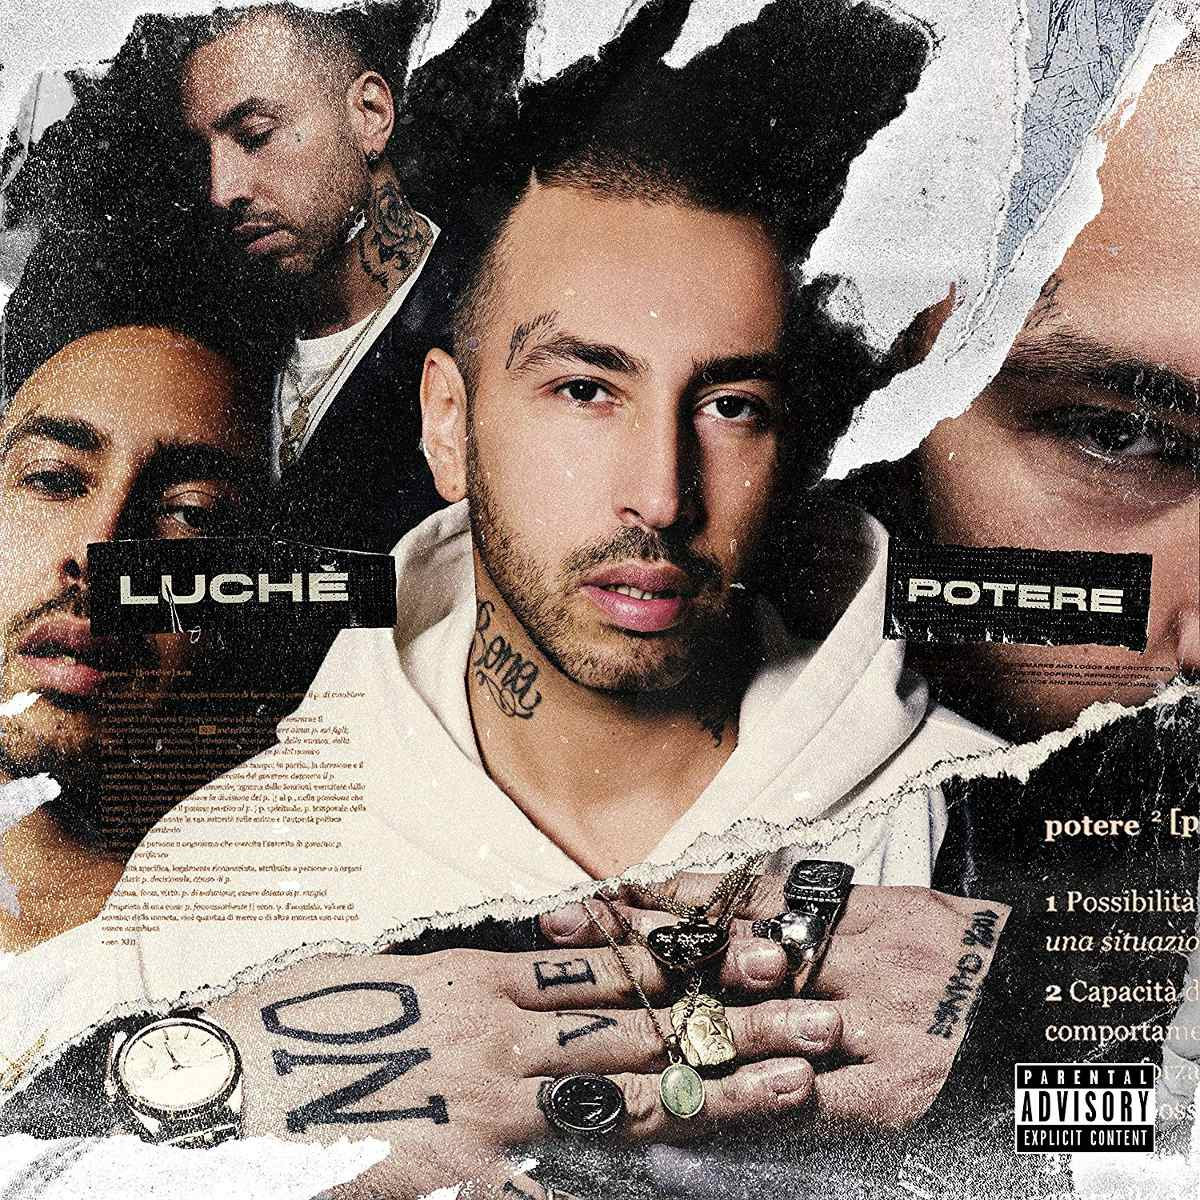 luche potere